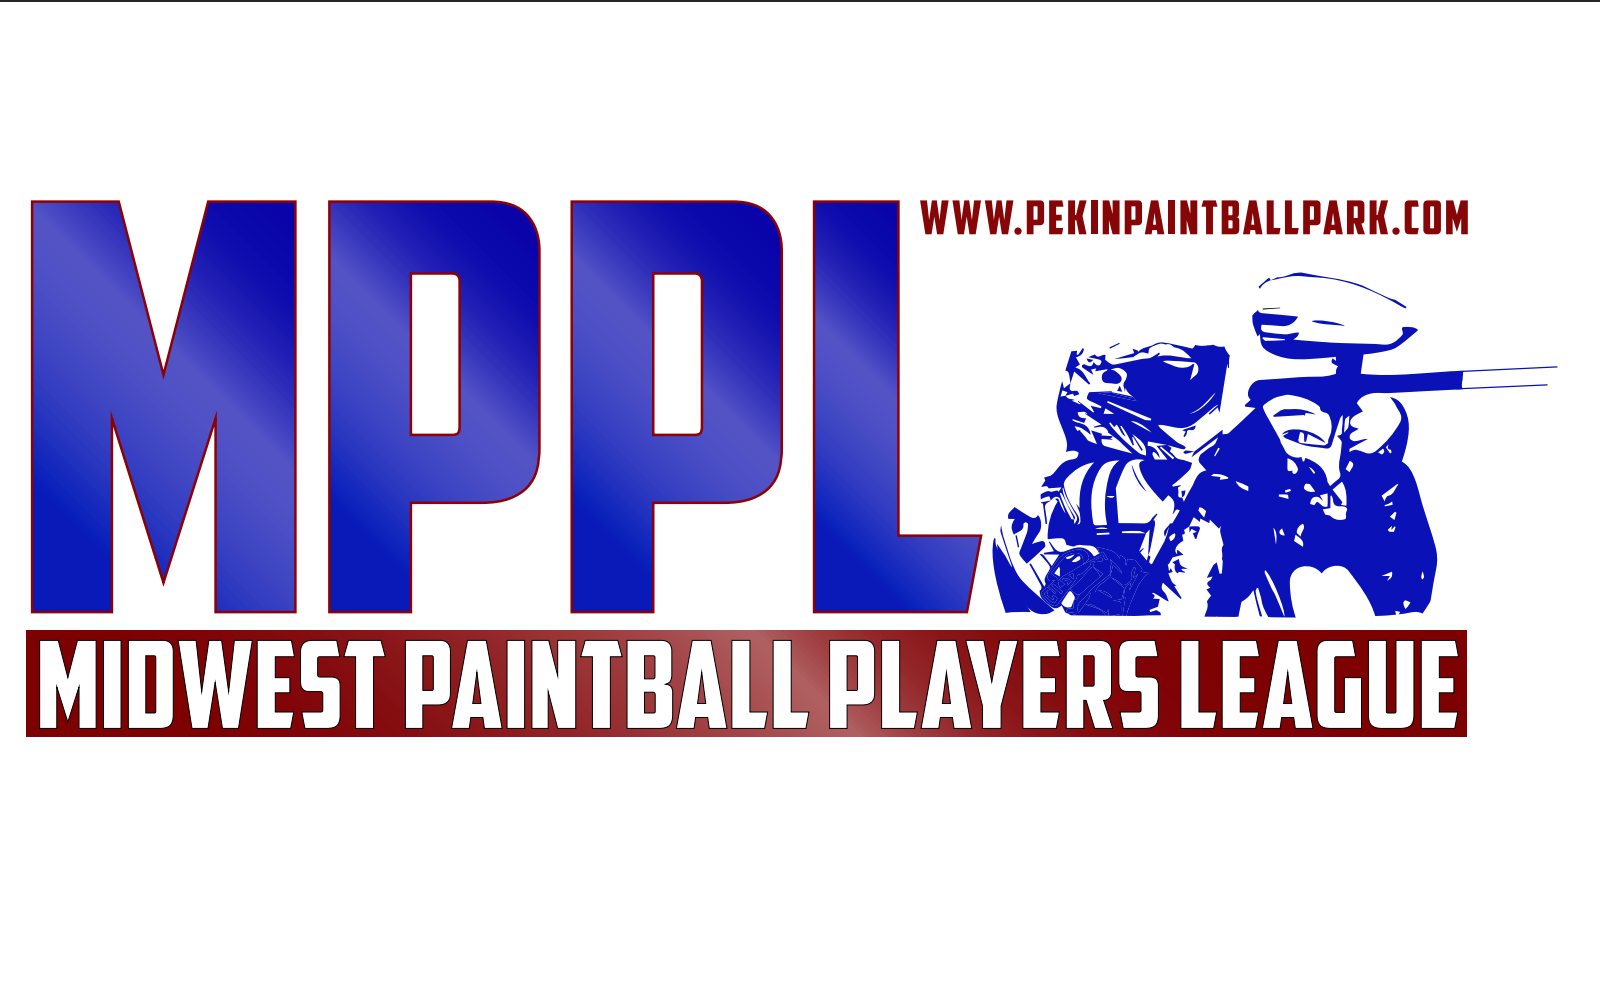 Midwest Paintball Players League